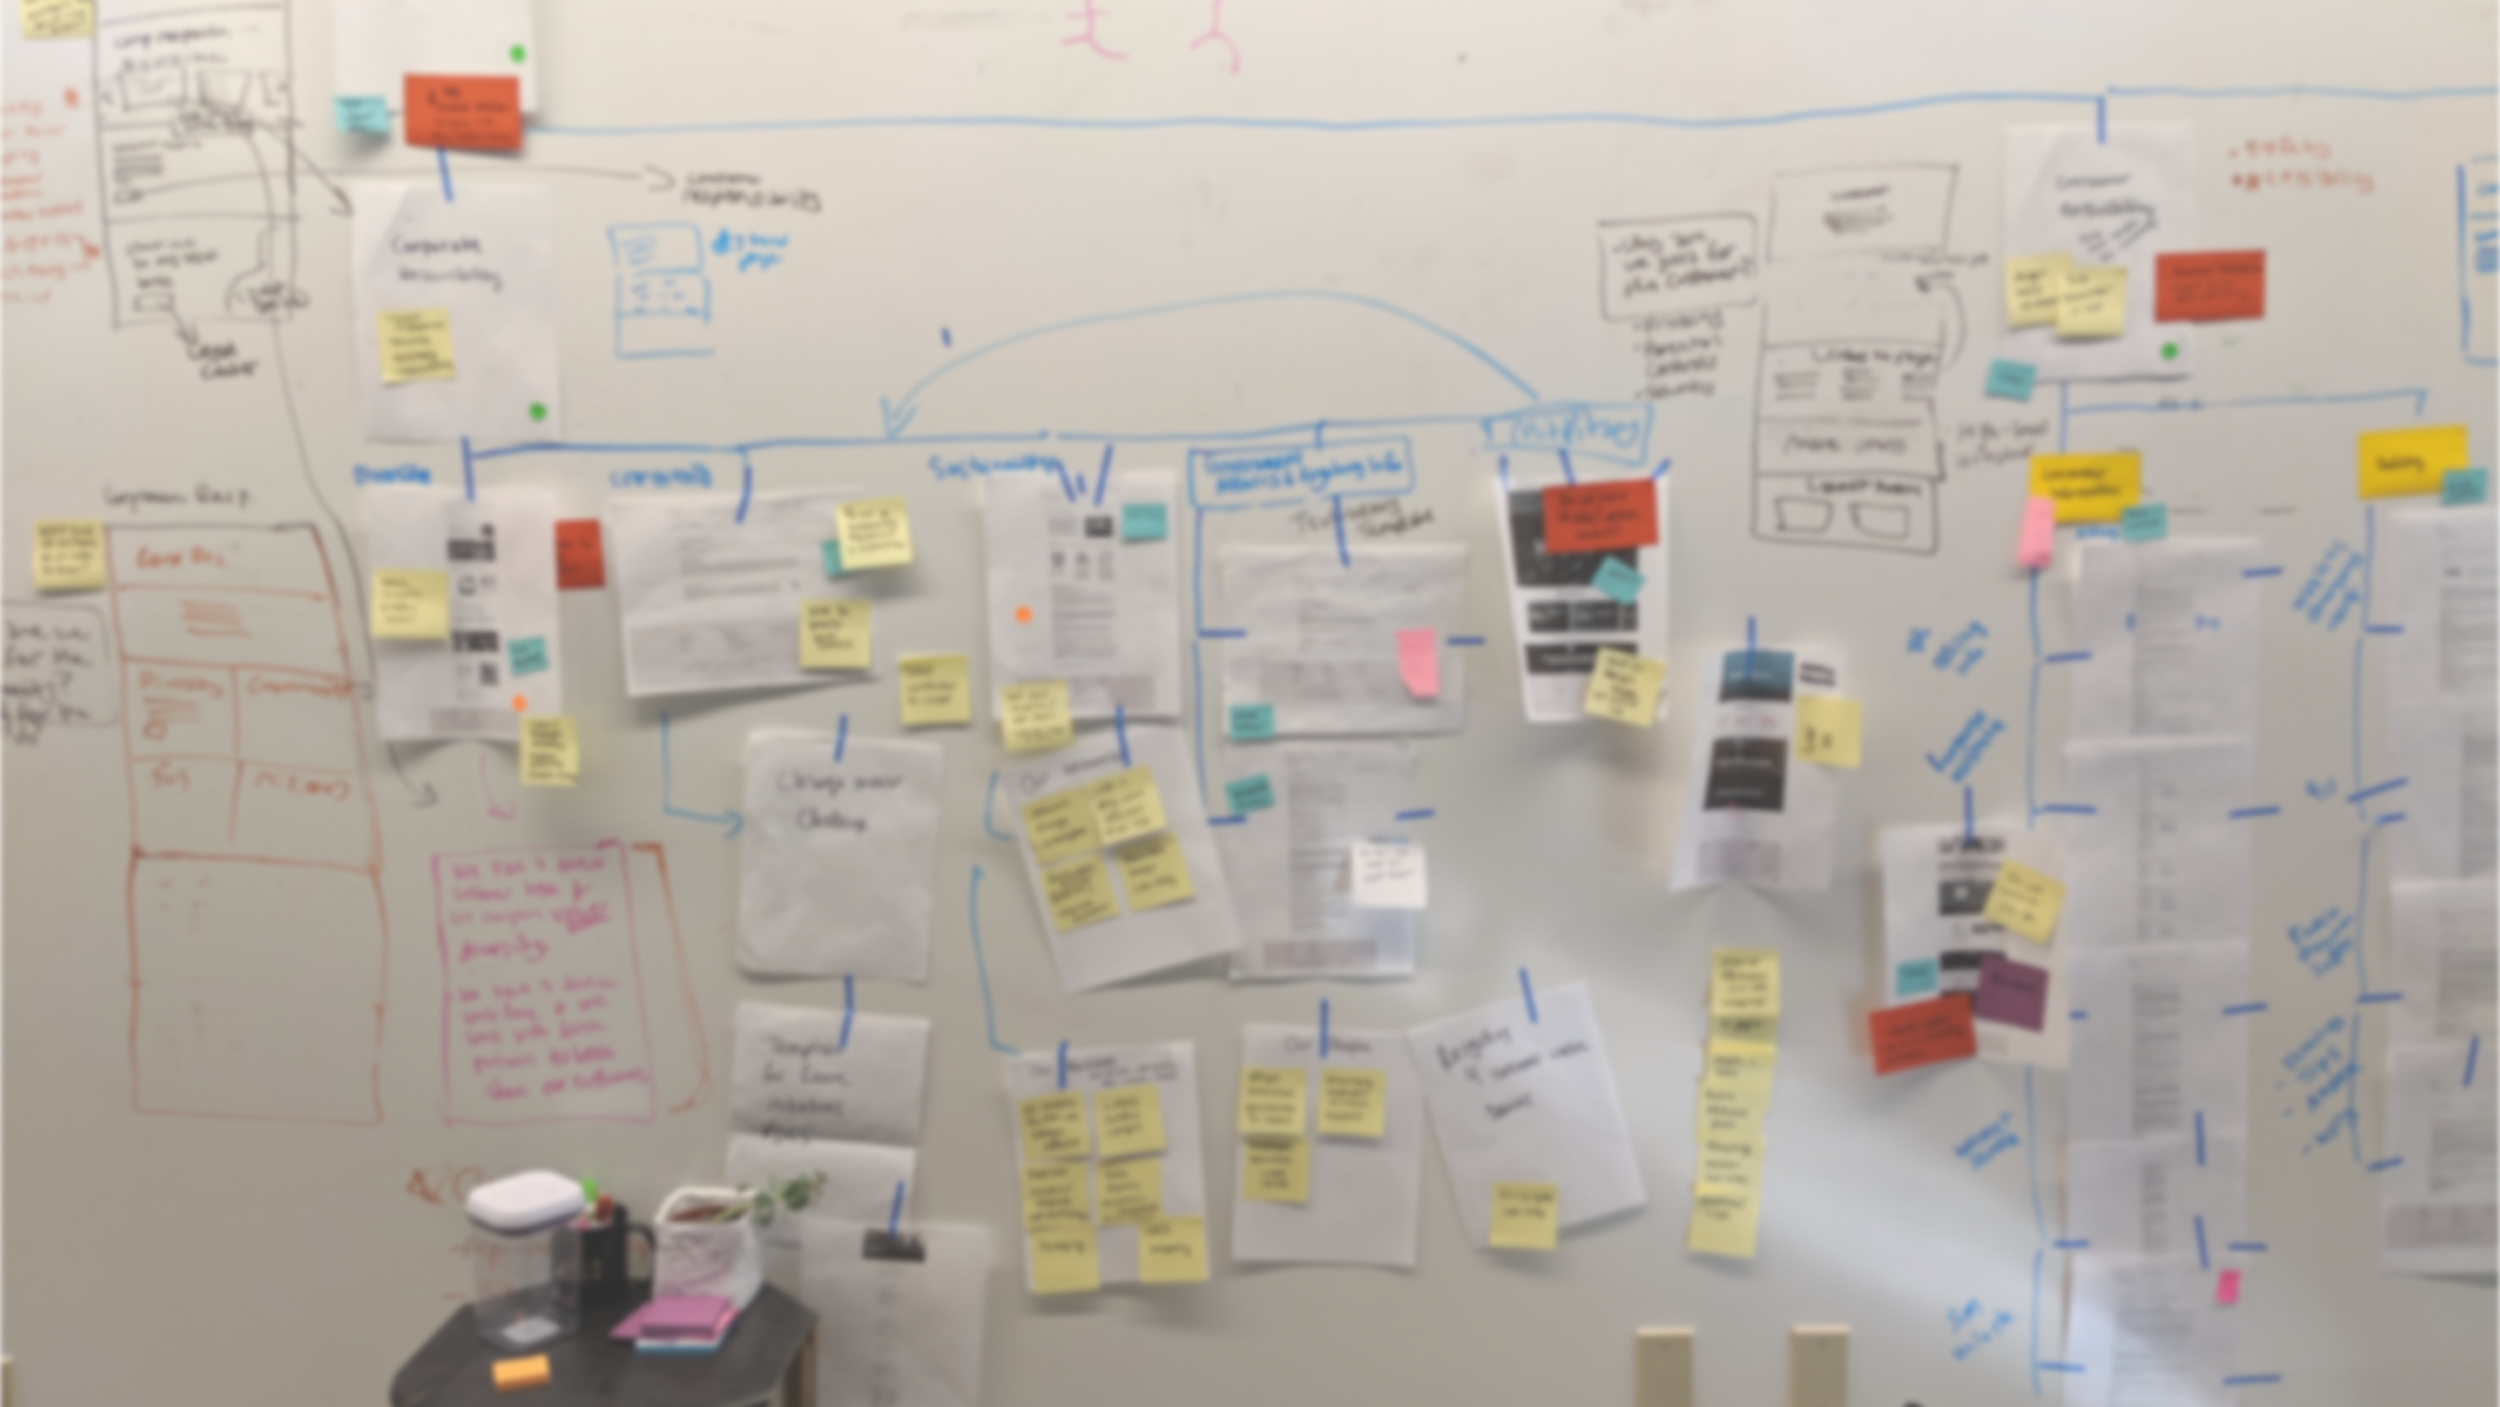 I encouraged the team to work more visually by putting all the wireframes and pages on a whiteboard wall, this improved our communication and collaboration with both our internal and external team.